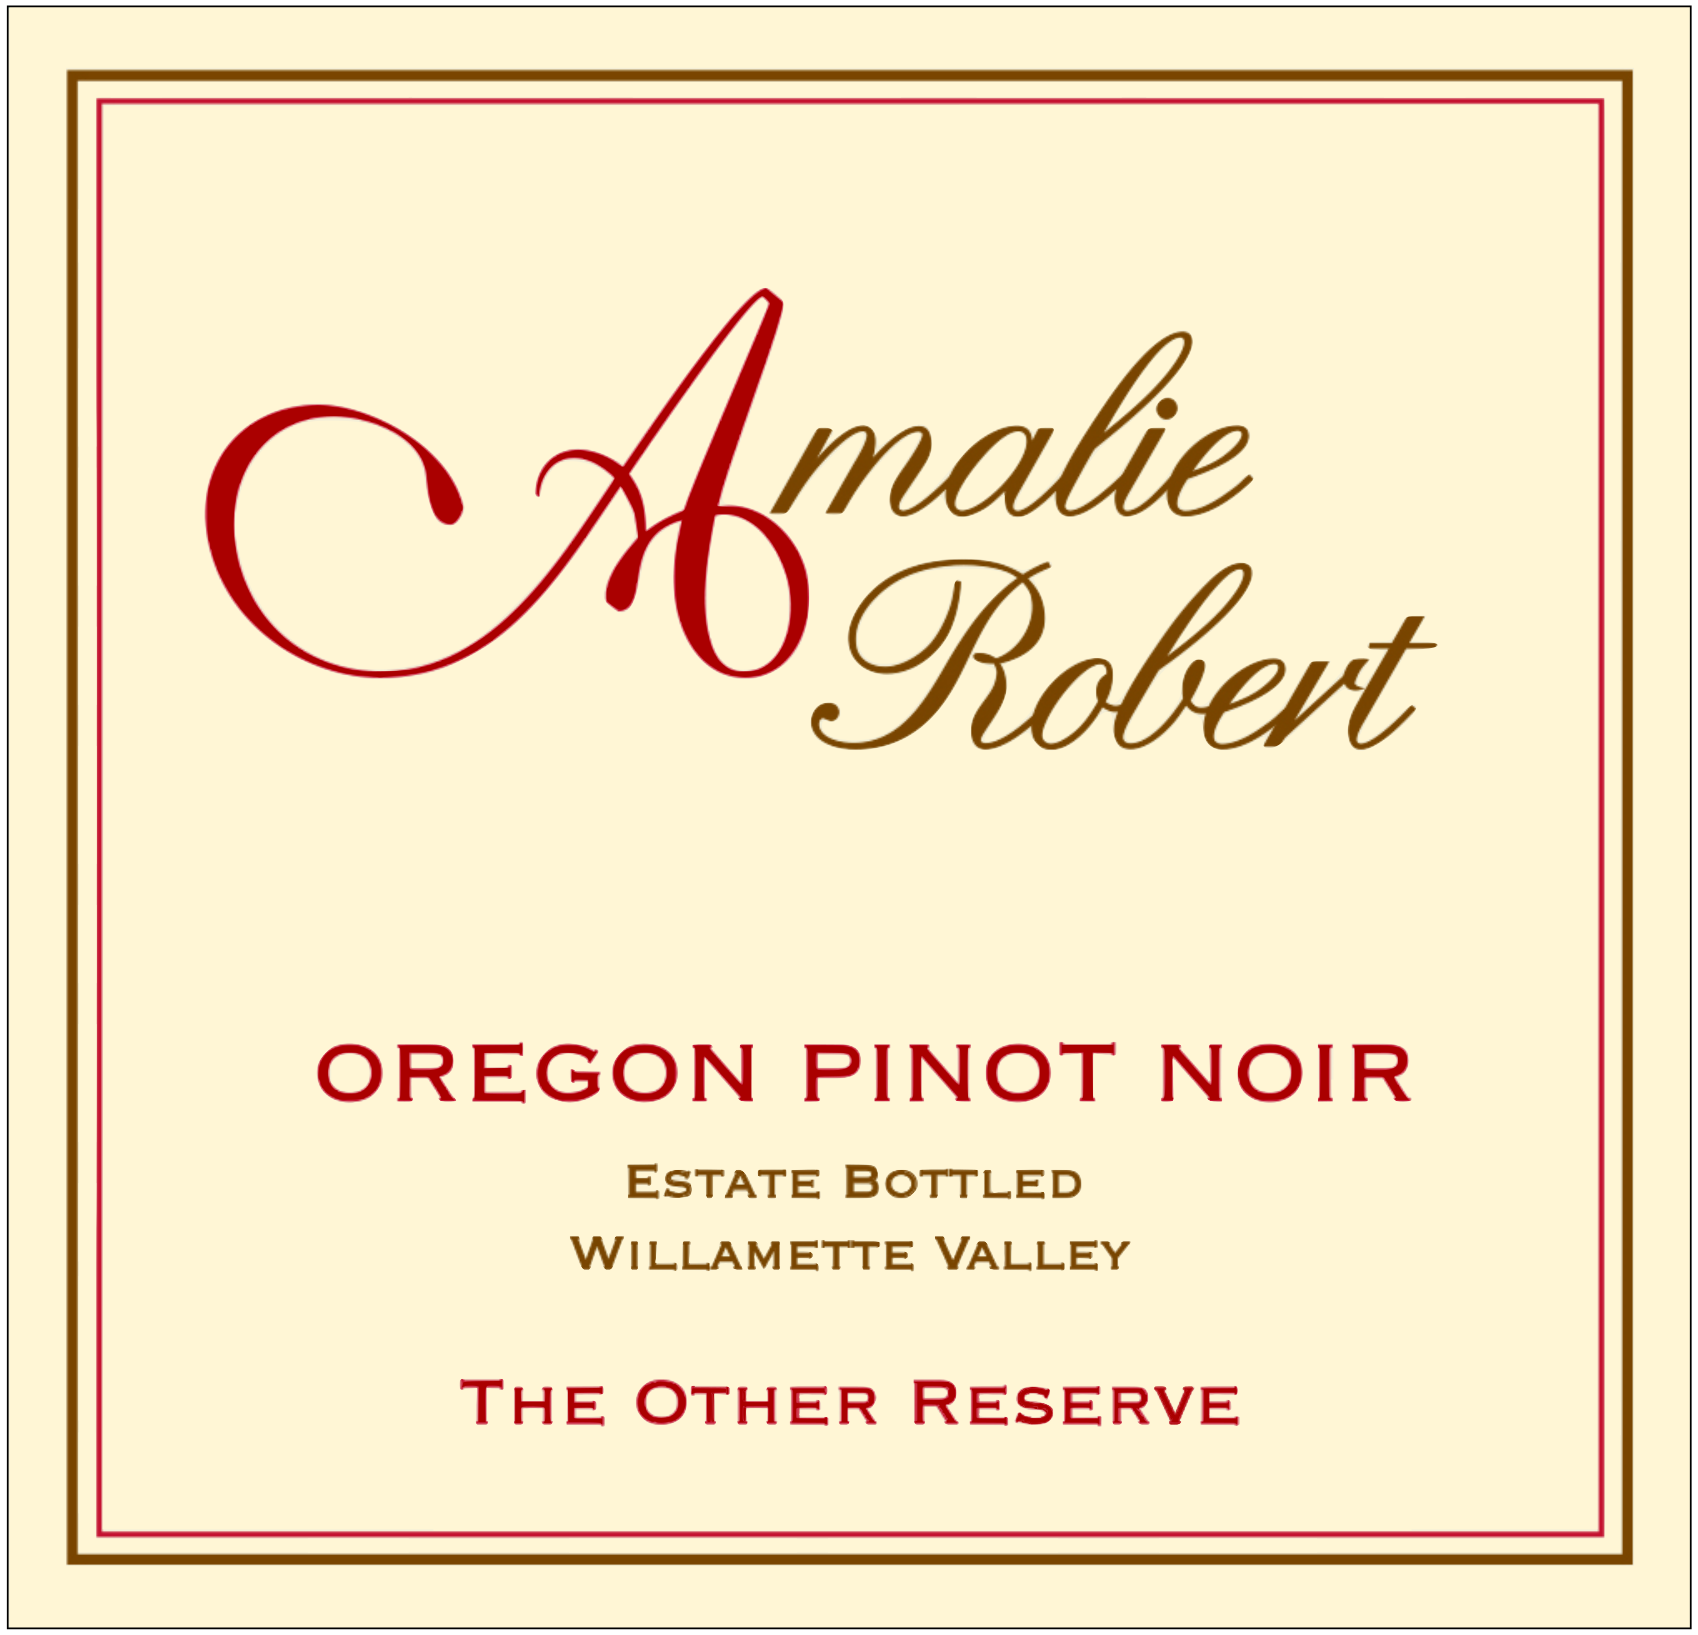 2012 The Other Reserve Pinot Noir